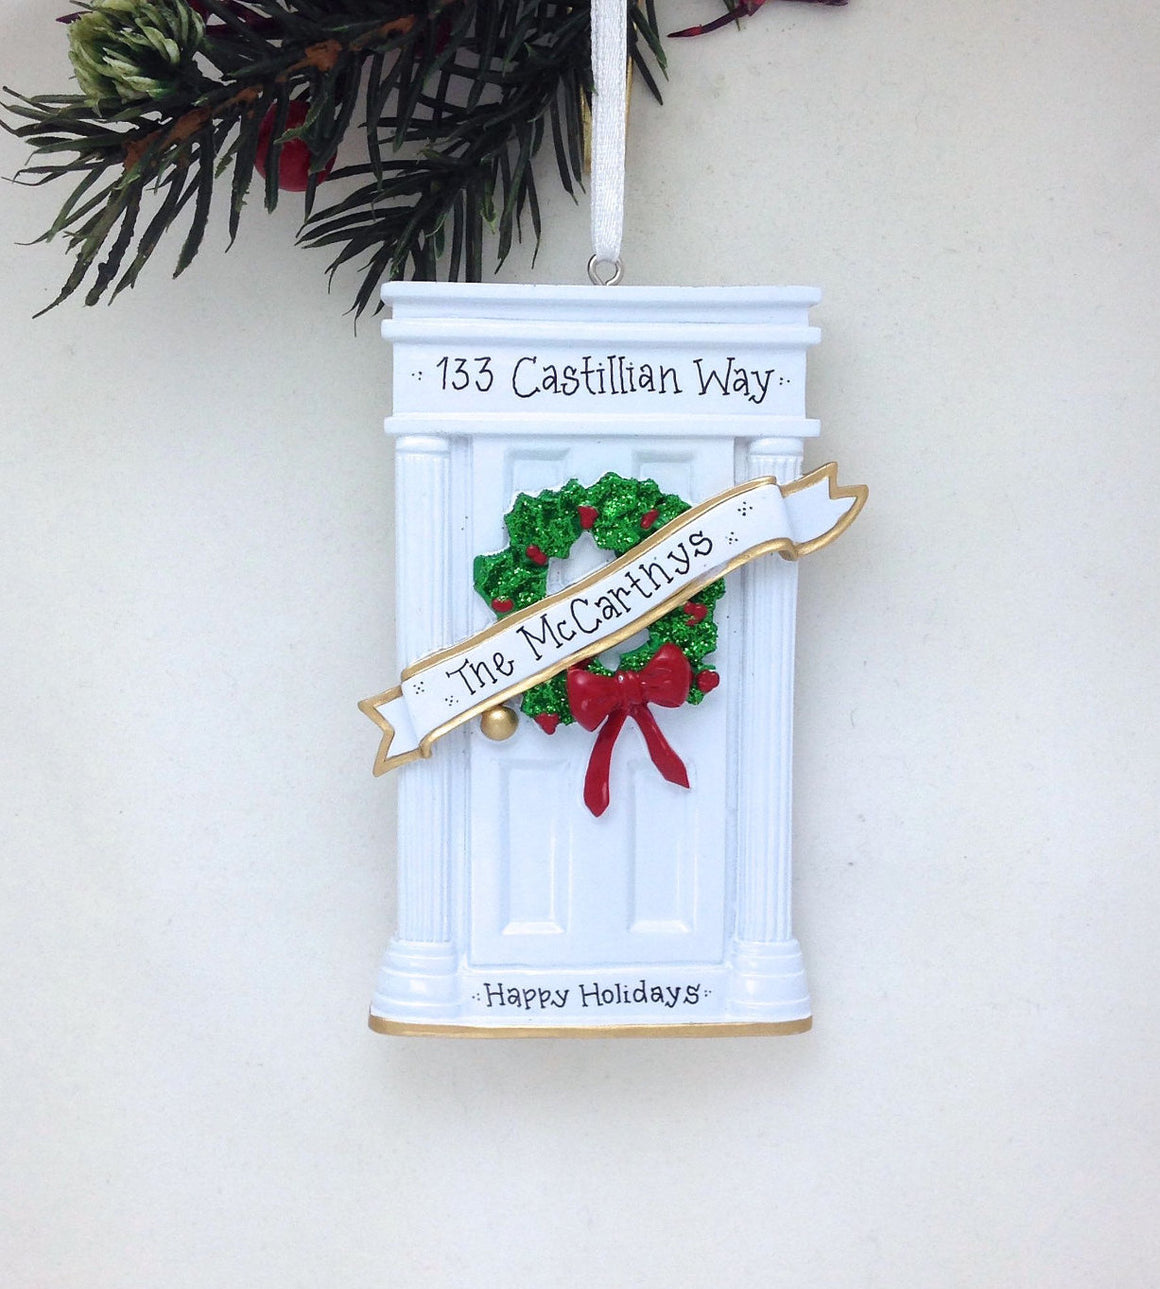 White Door Personalized Christmas Ornament / New Home Ornament / Real Estate